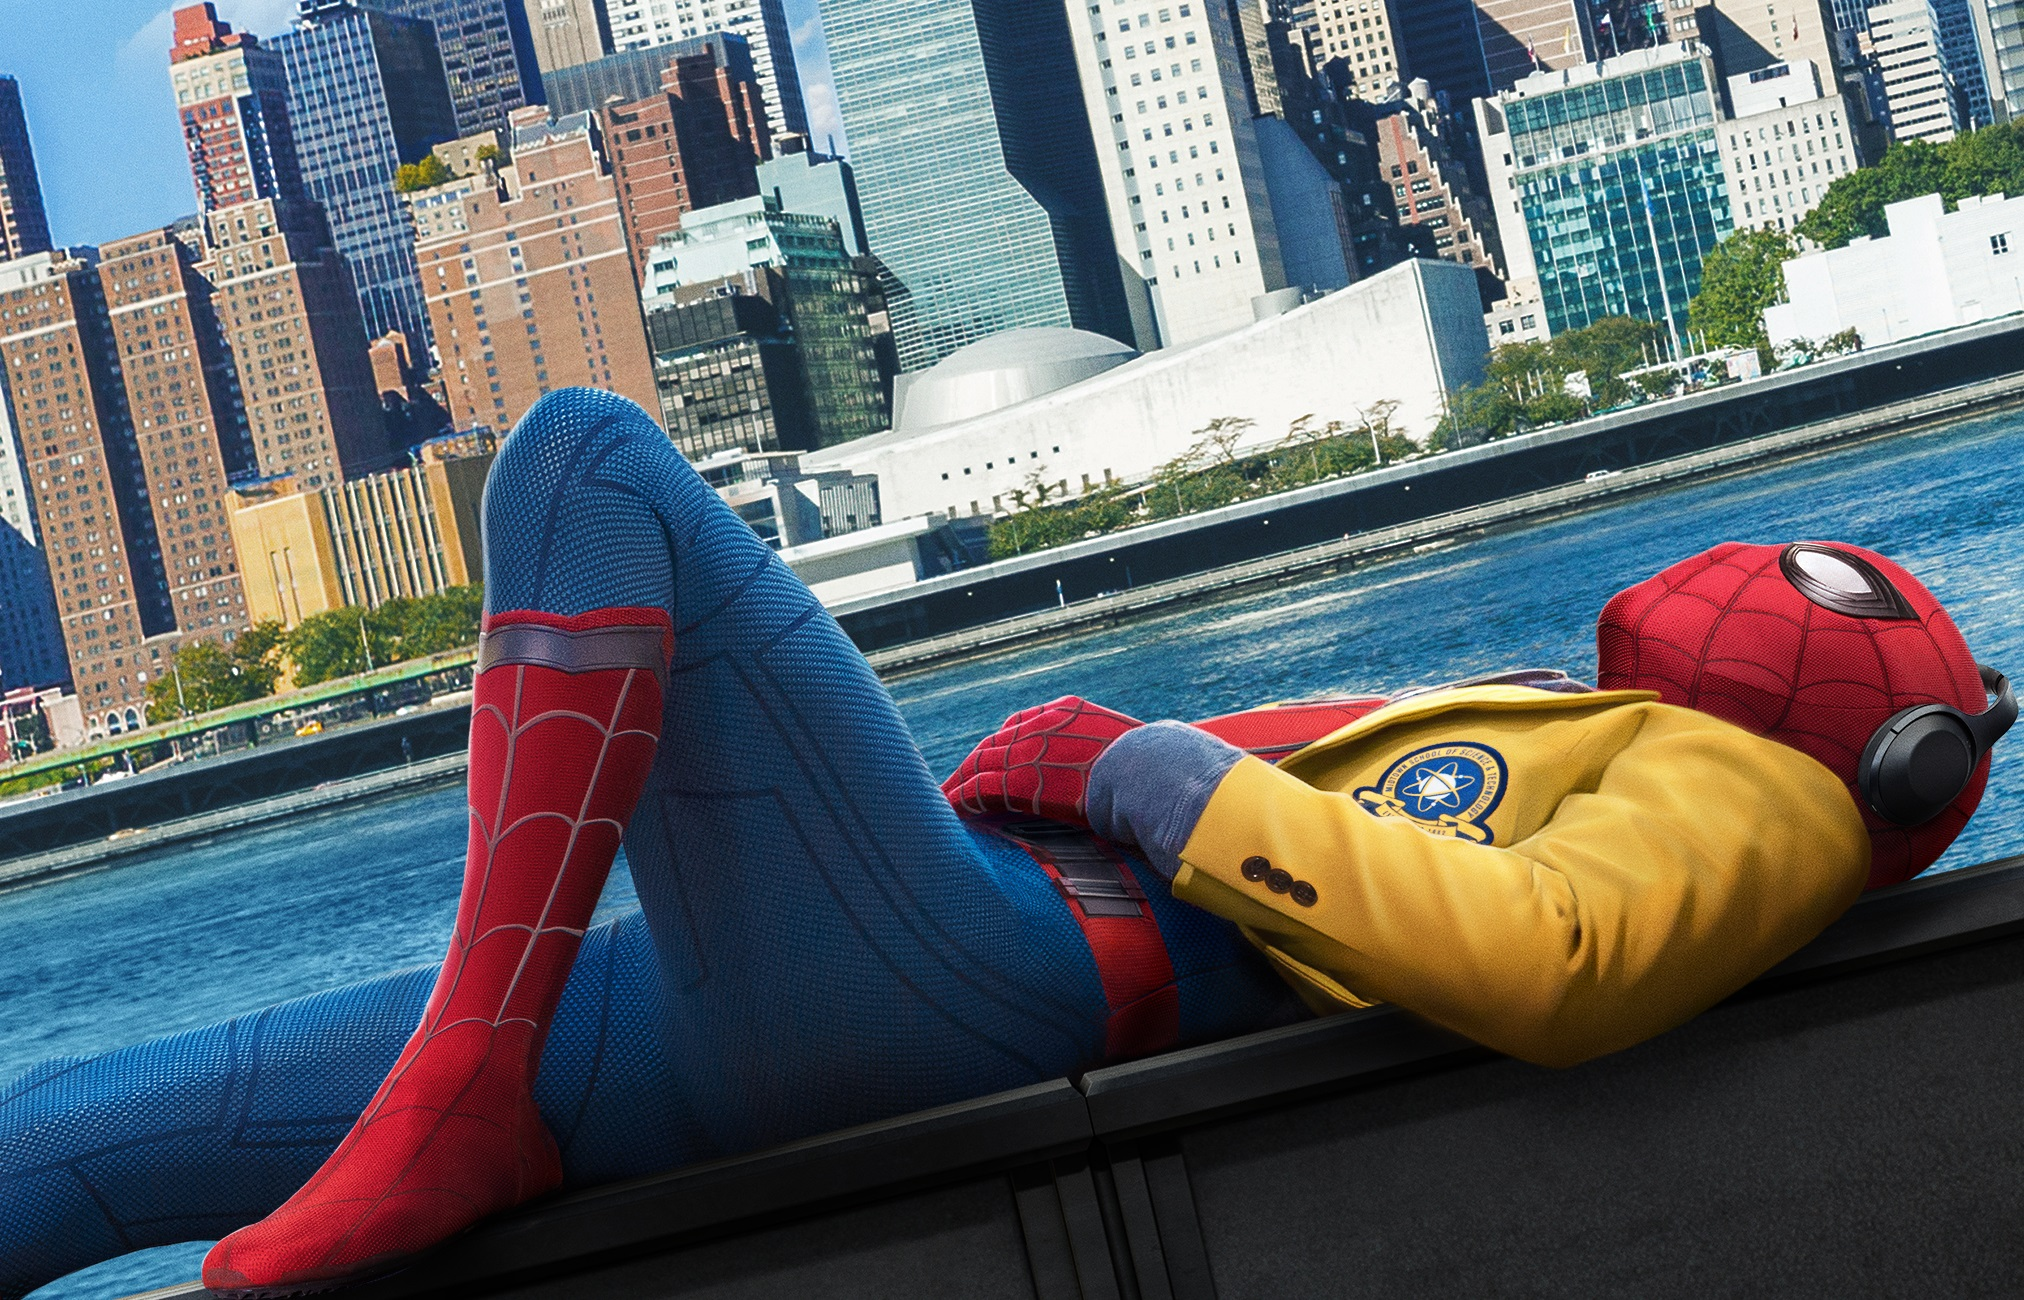 Spider Man Homecoming HD Wallpaper Background Image 2024x1300 2024x1300